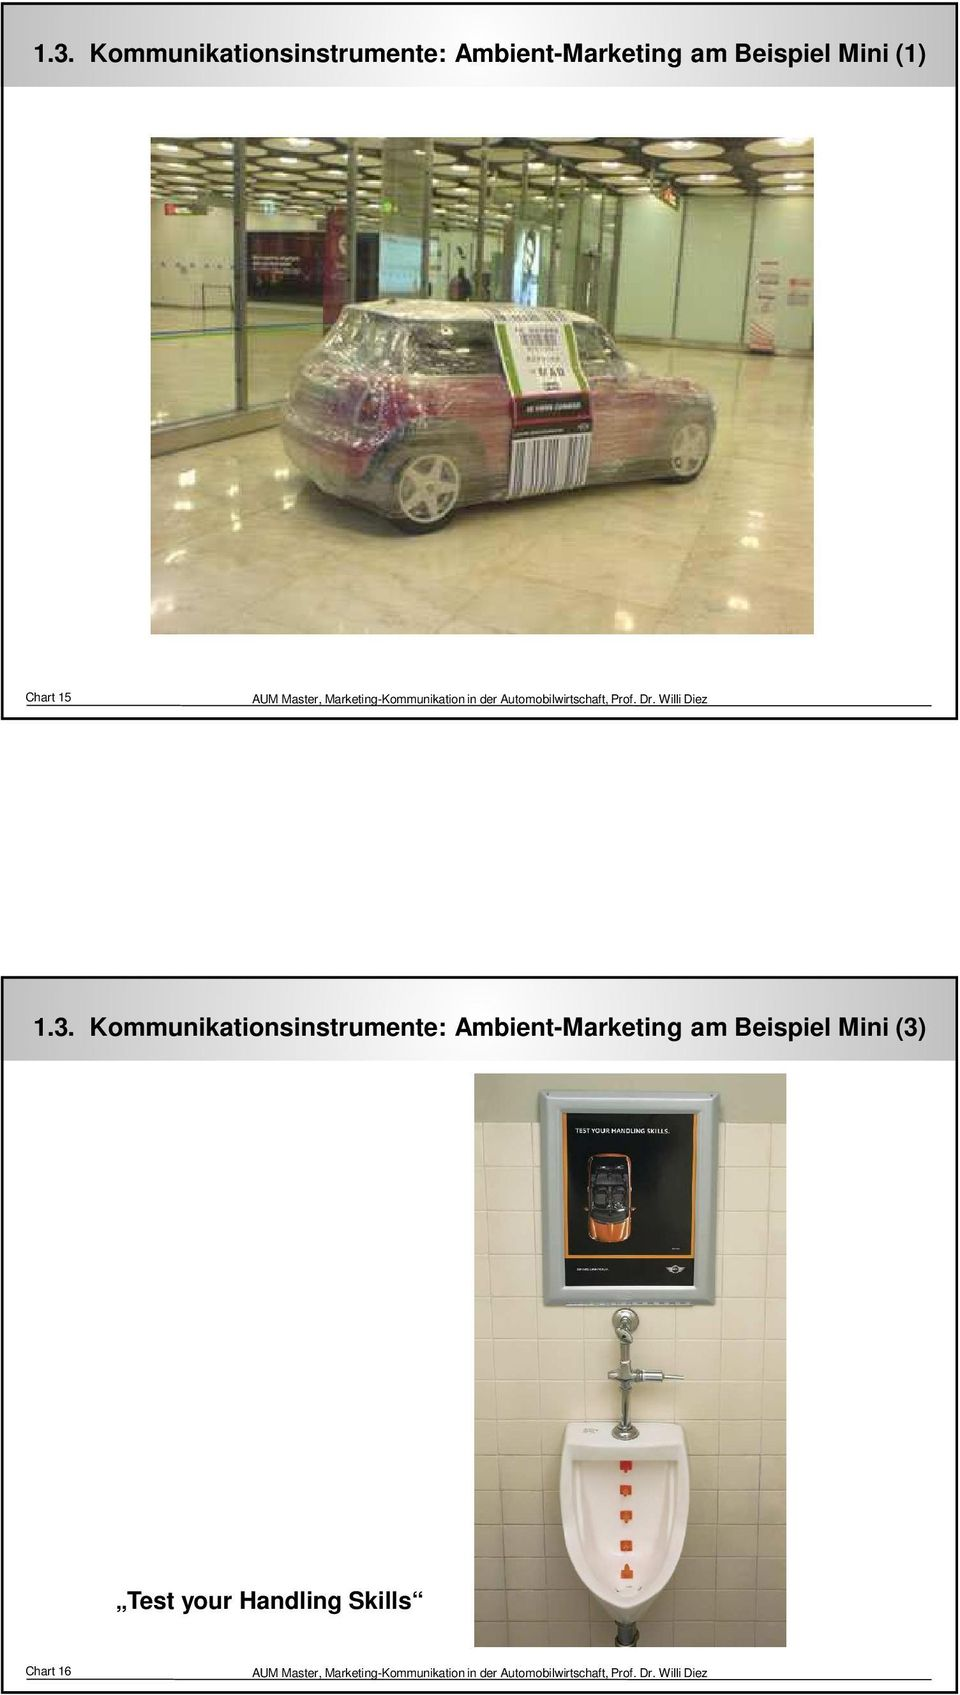 15  Ambient-Marketing am Beispiel Mini (3)